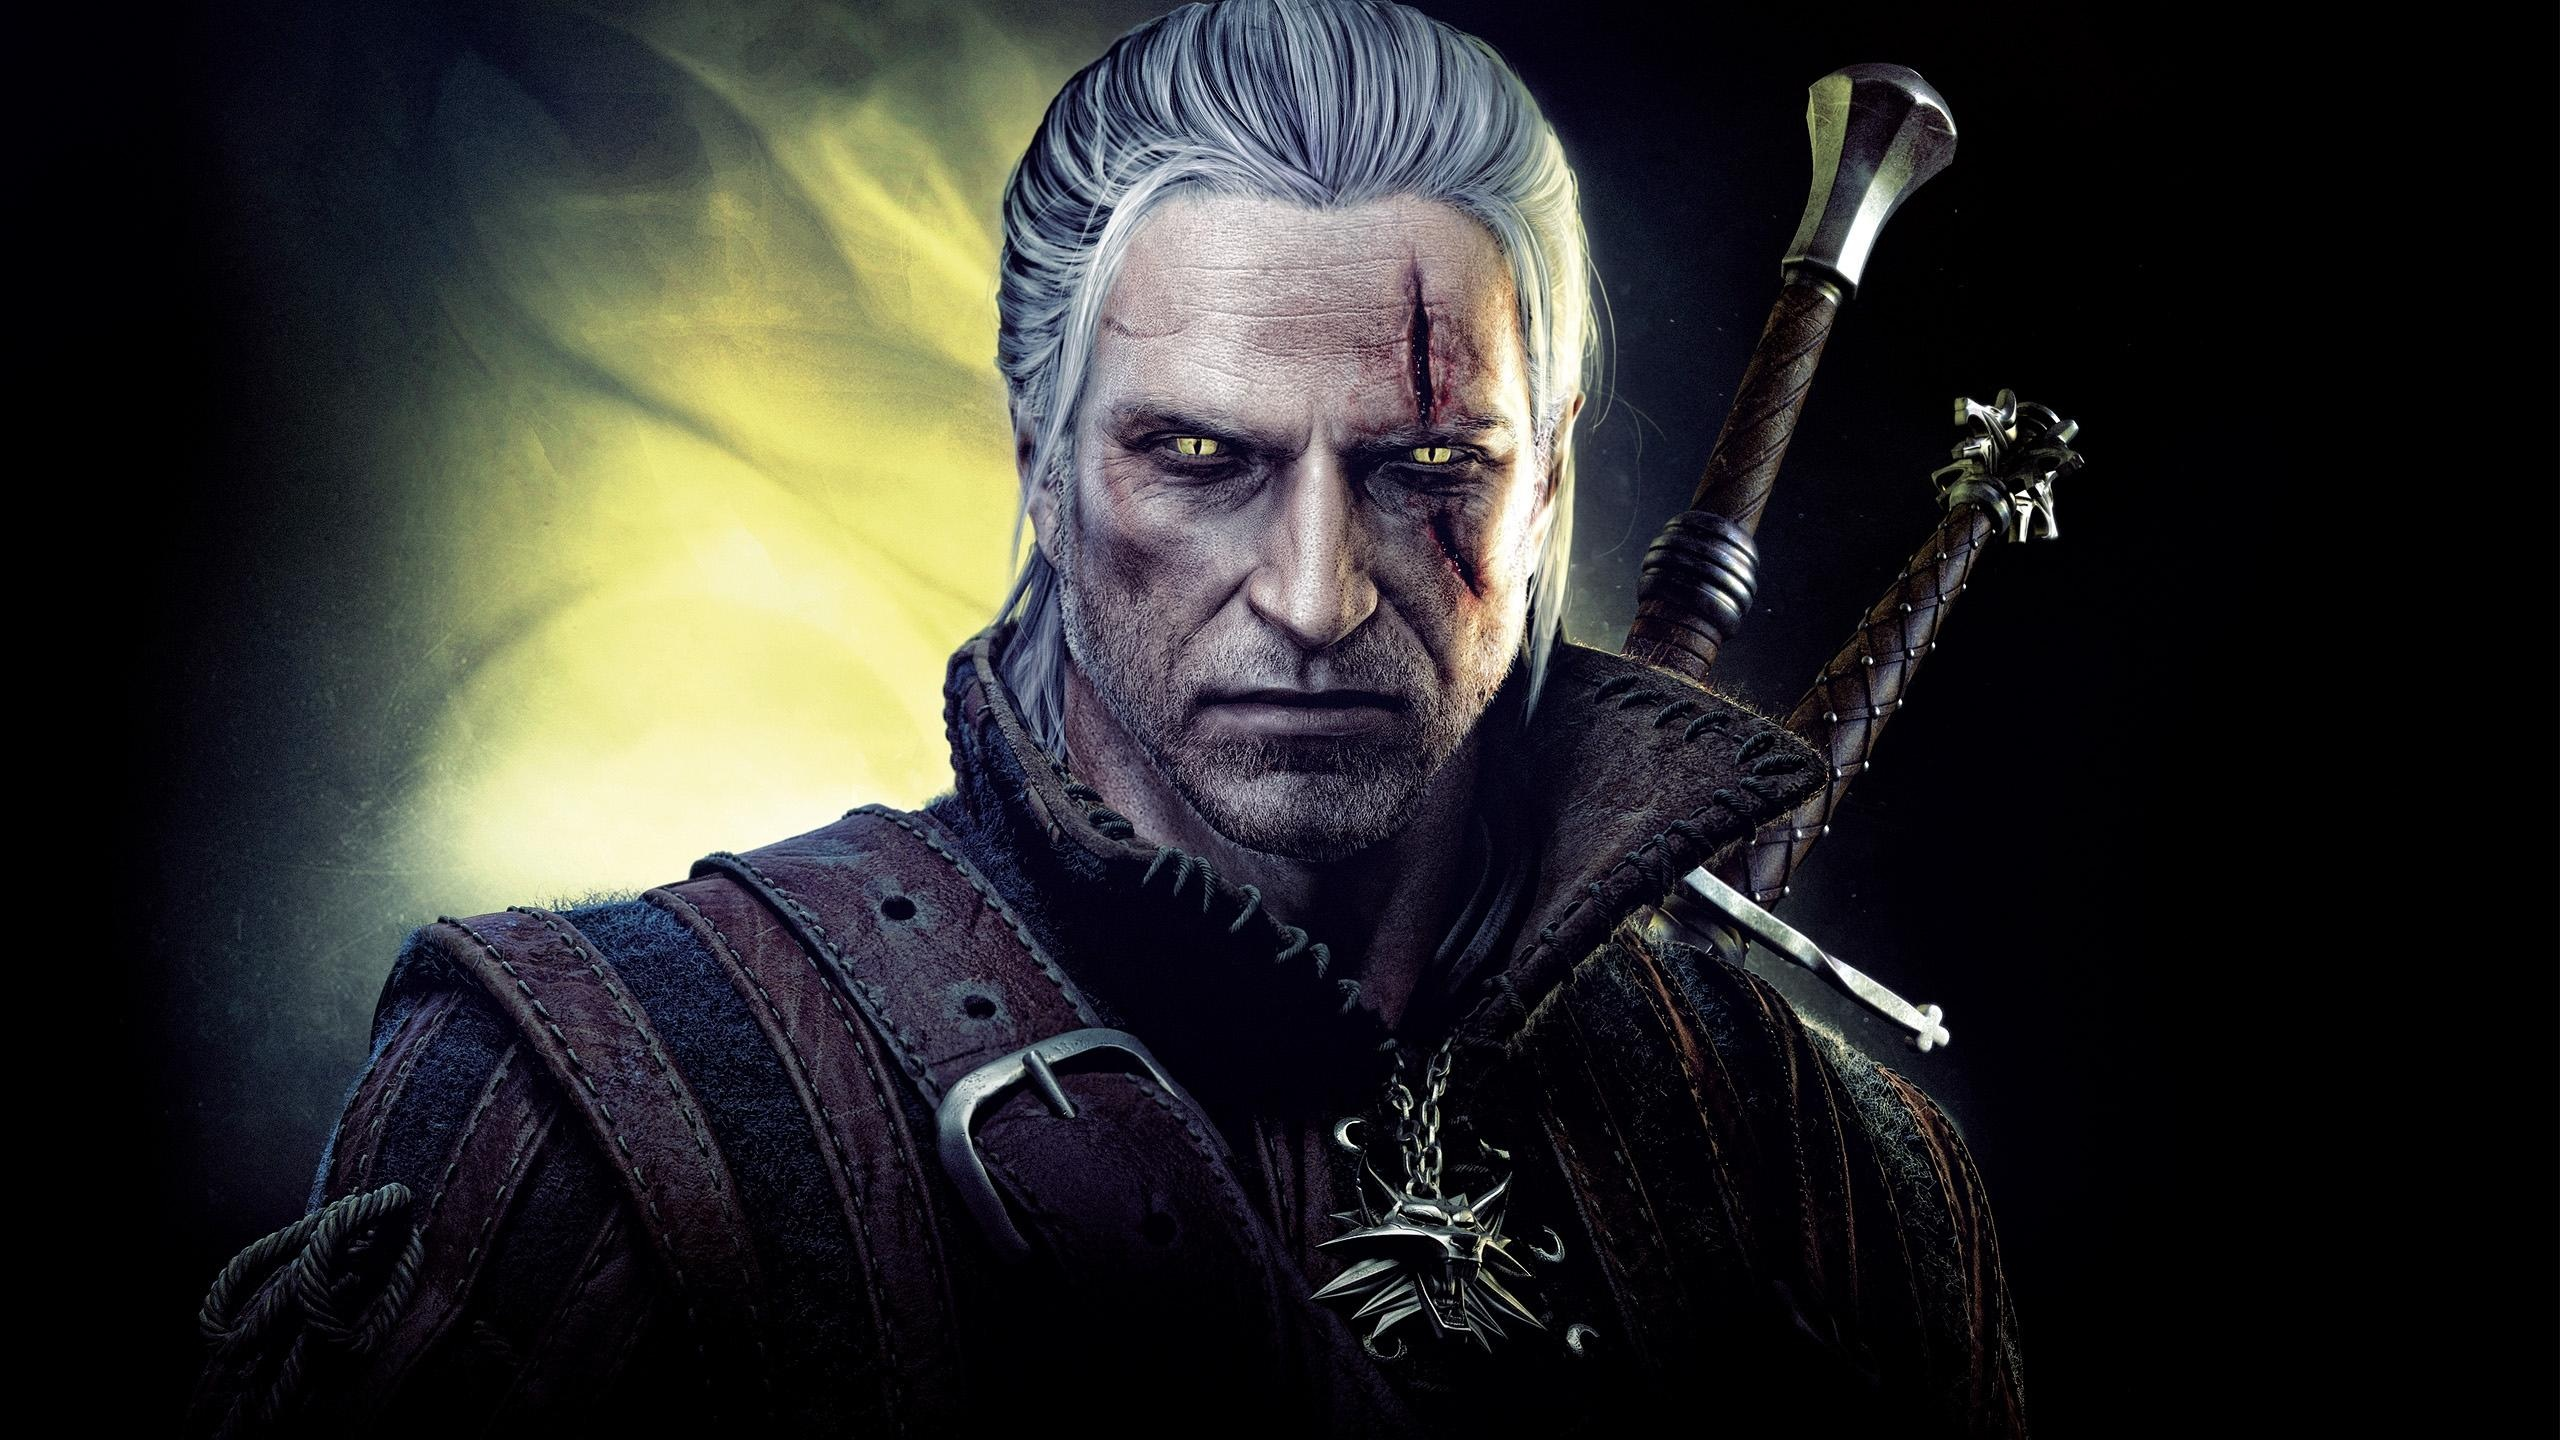 The Witcher 2: Assassins of Kings wallpaper - 2560x1440